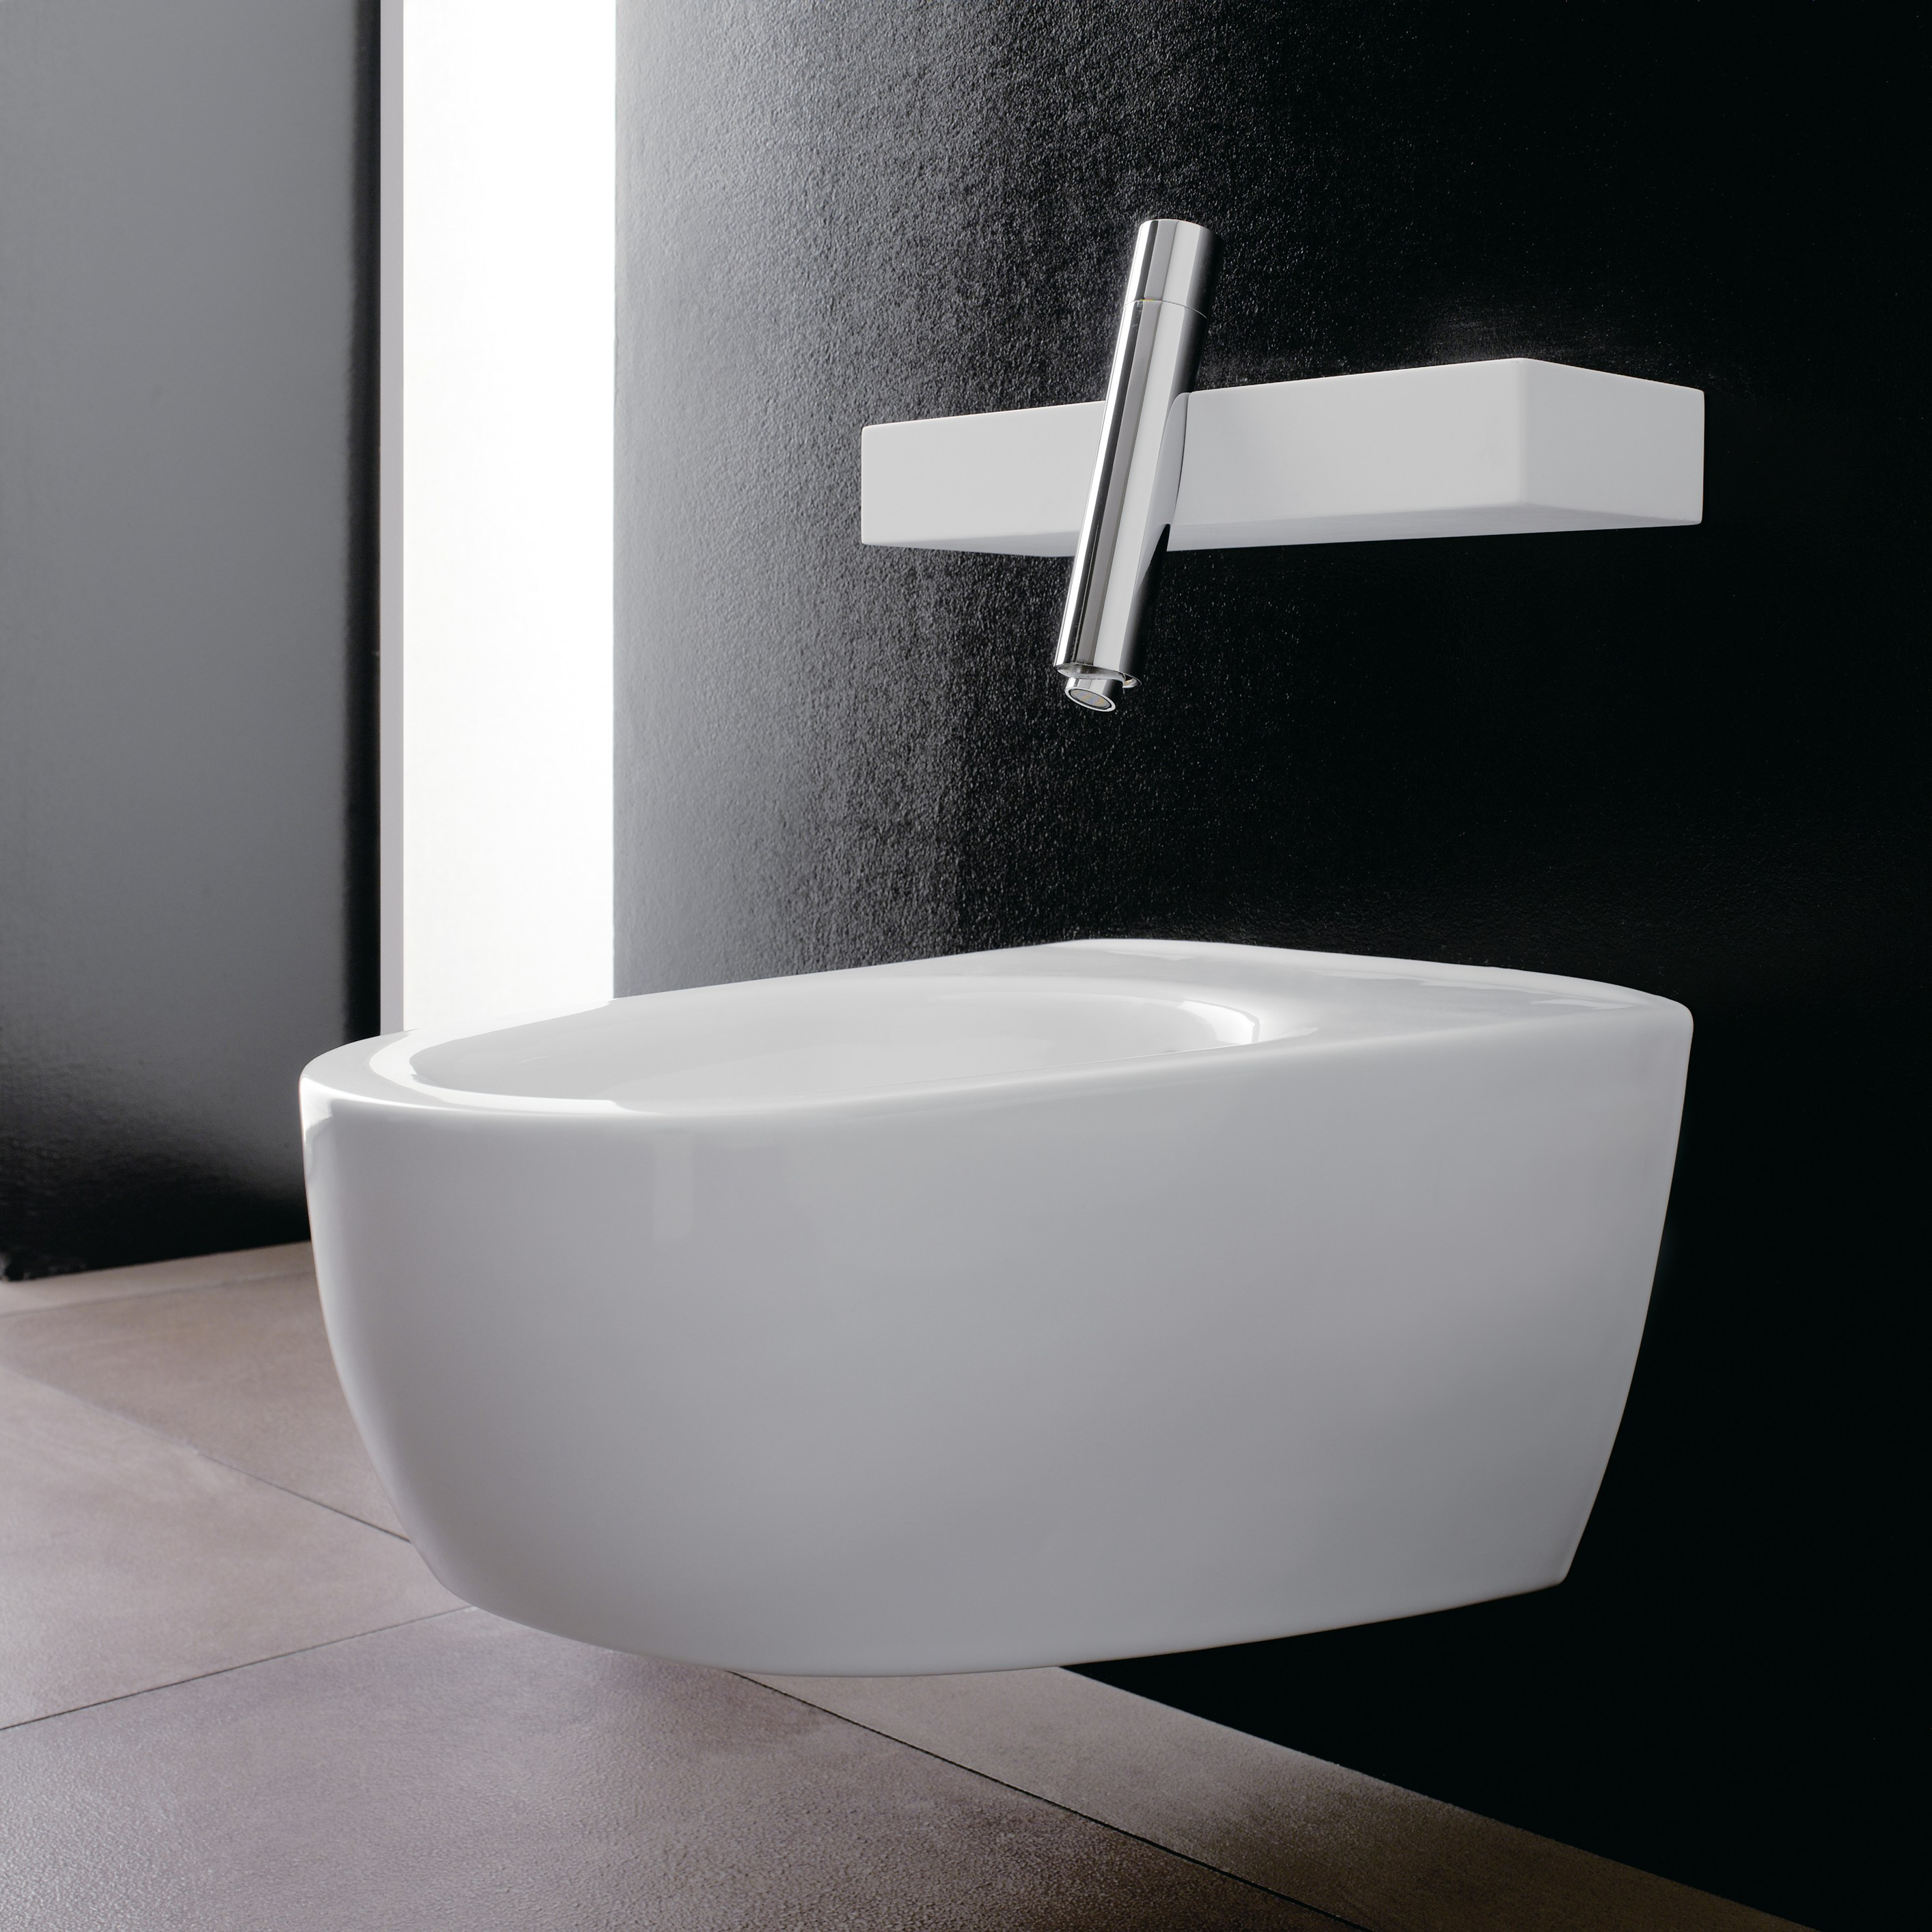 blok bidet mixer by rubinetterie 3m design giancarlo vegni. Black Bedroom Furniture Sets. Home Design Ideas